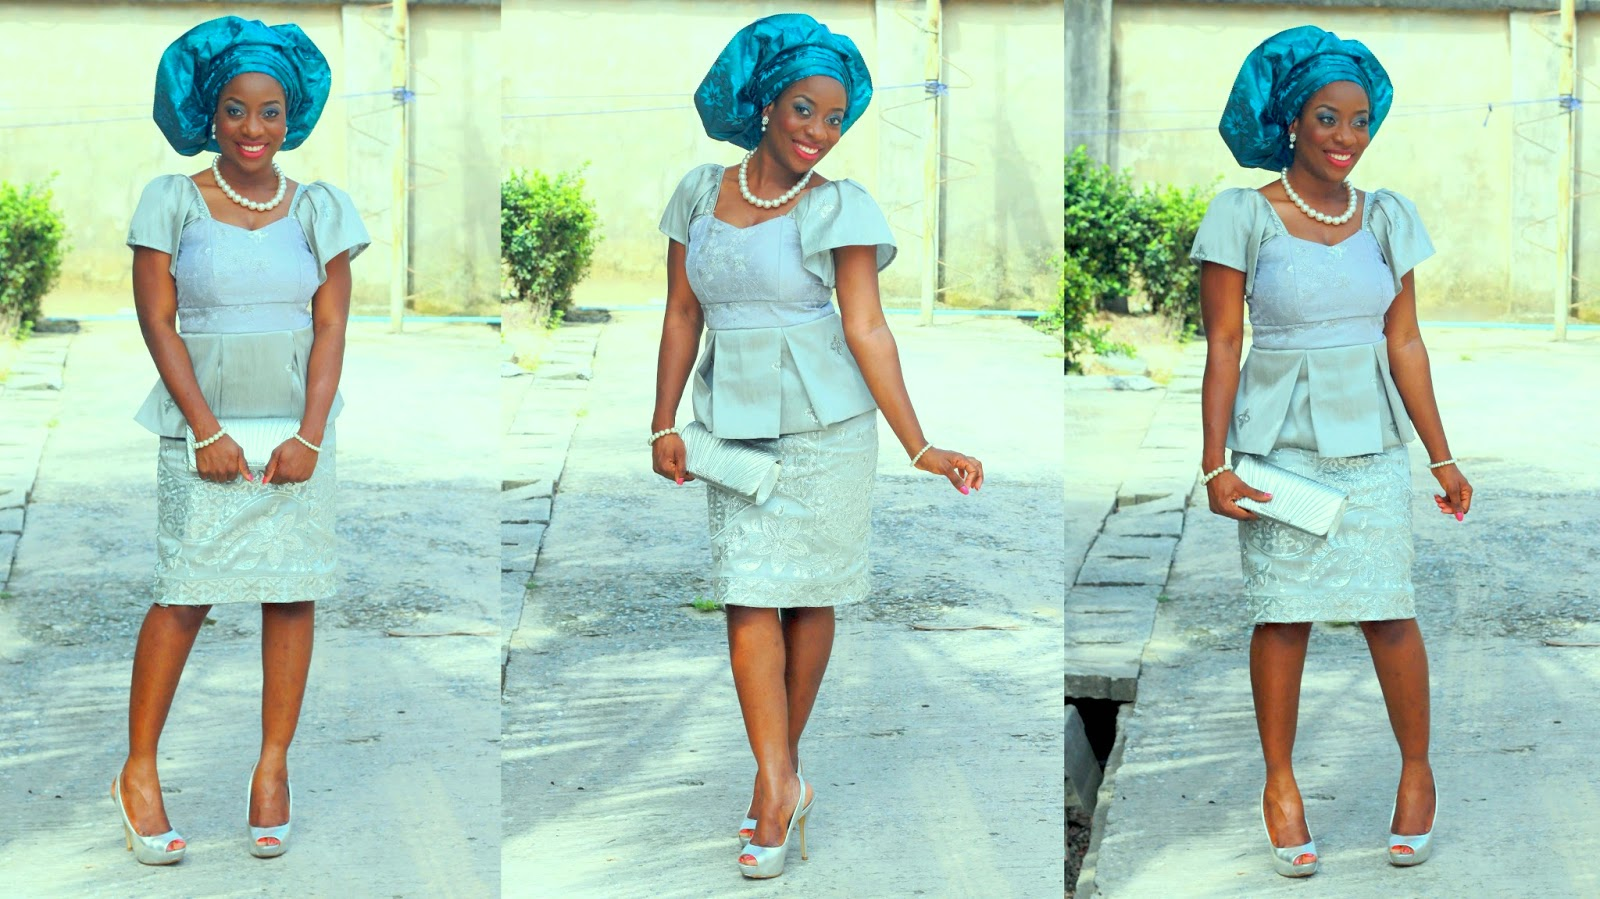 VIDEO] OUTFIT OF THE DAY - WARRI WEDDING - SISIYEMMIE: Nigerian Food ...